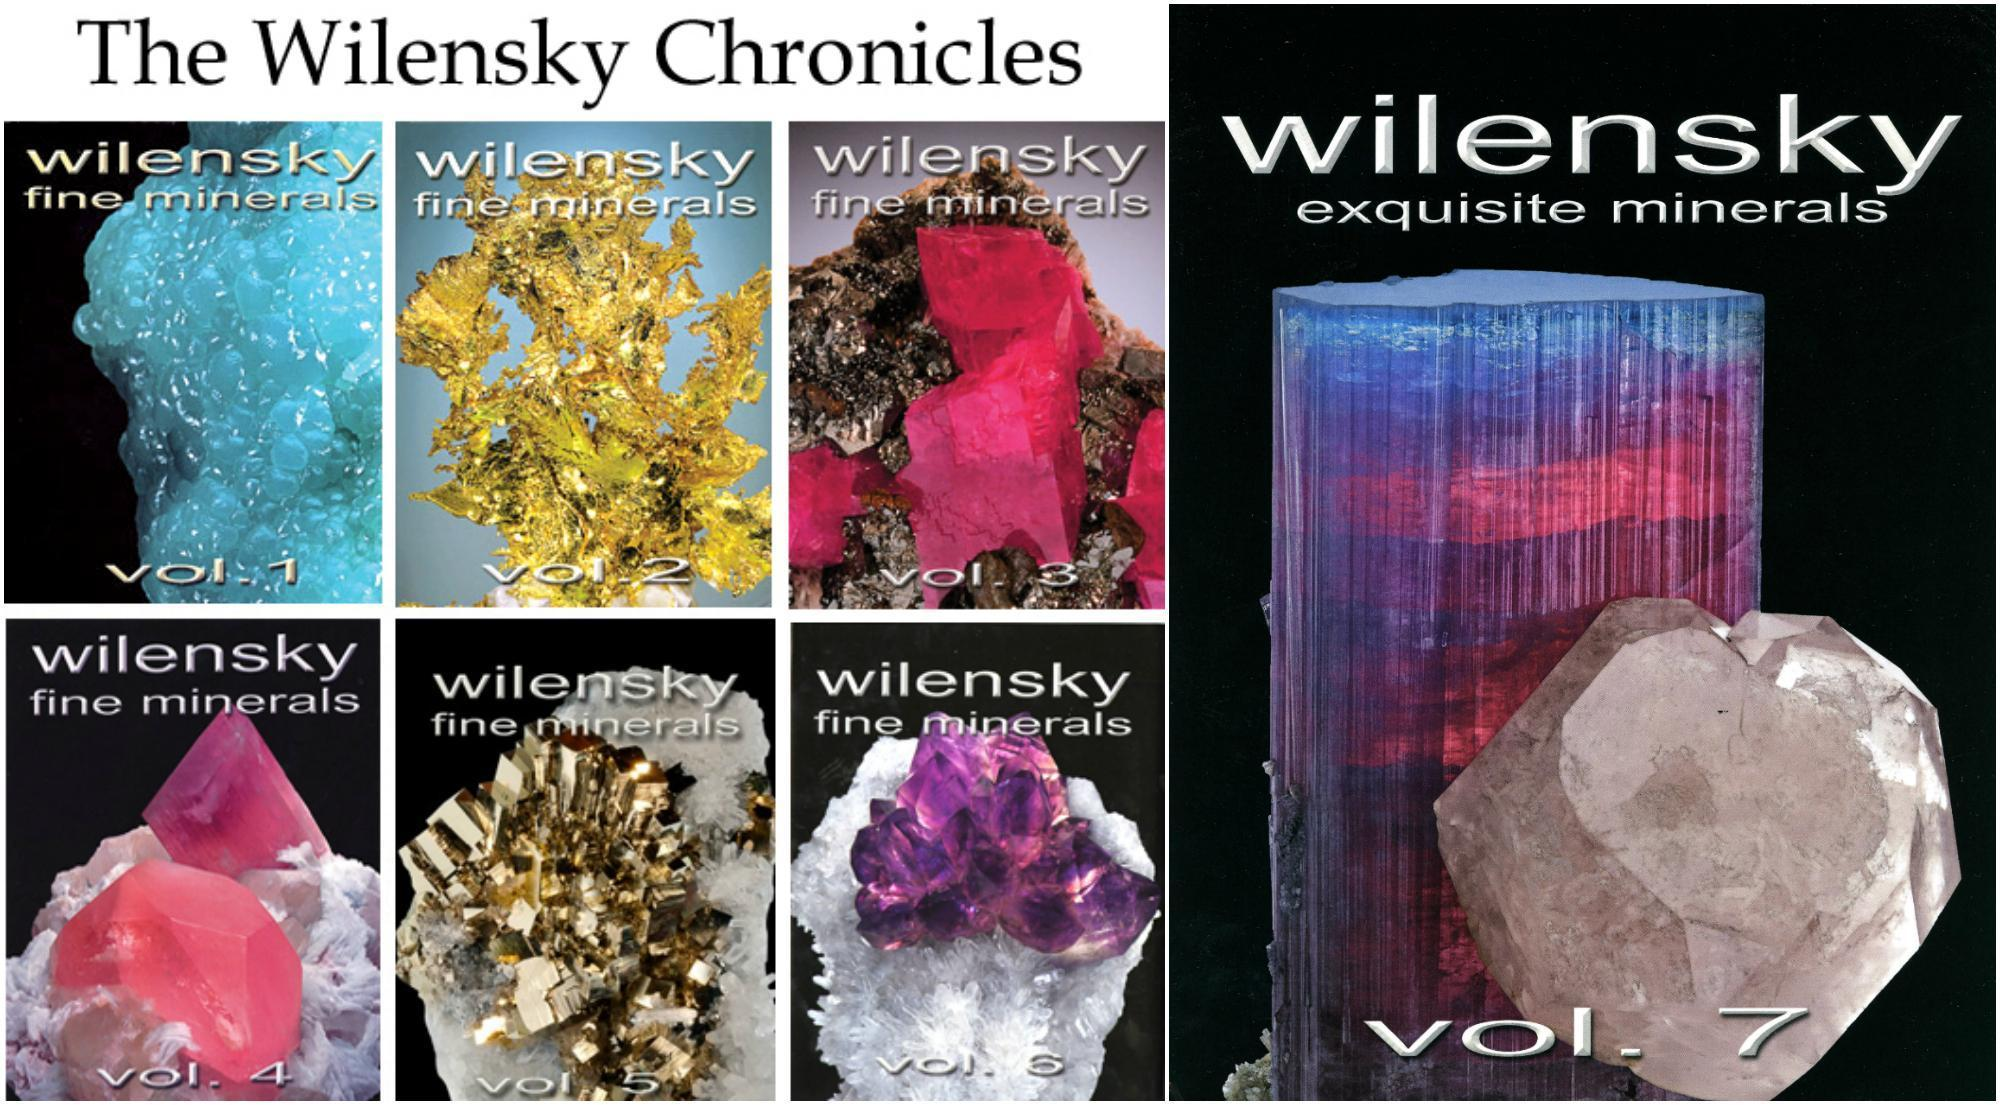 THE WILENSKY CHRONICLES Complete set of 7 volumes